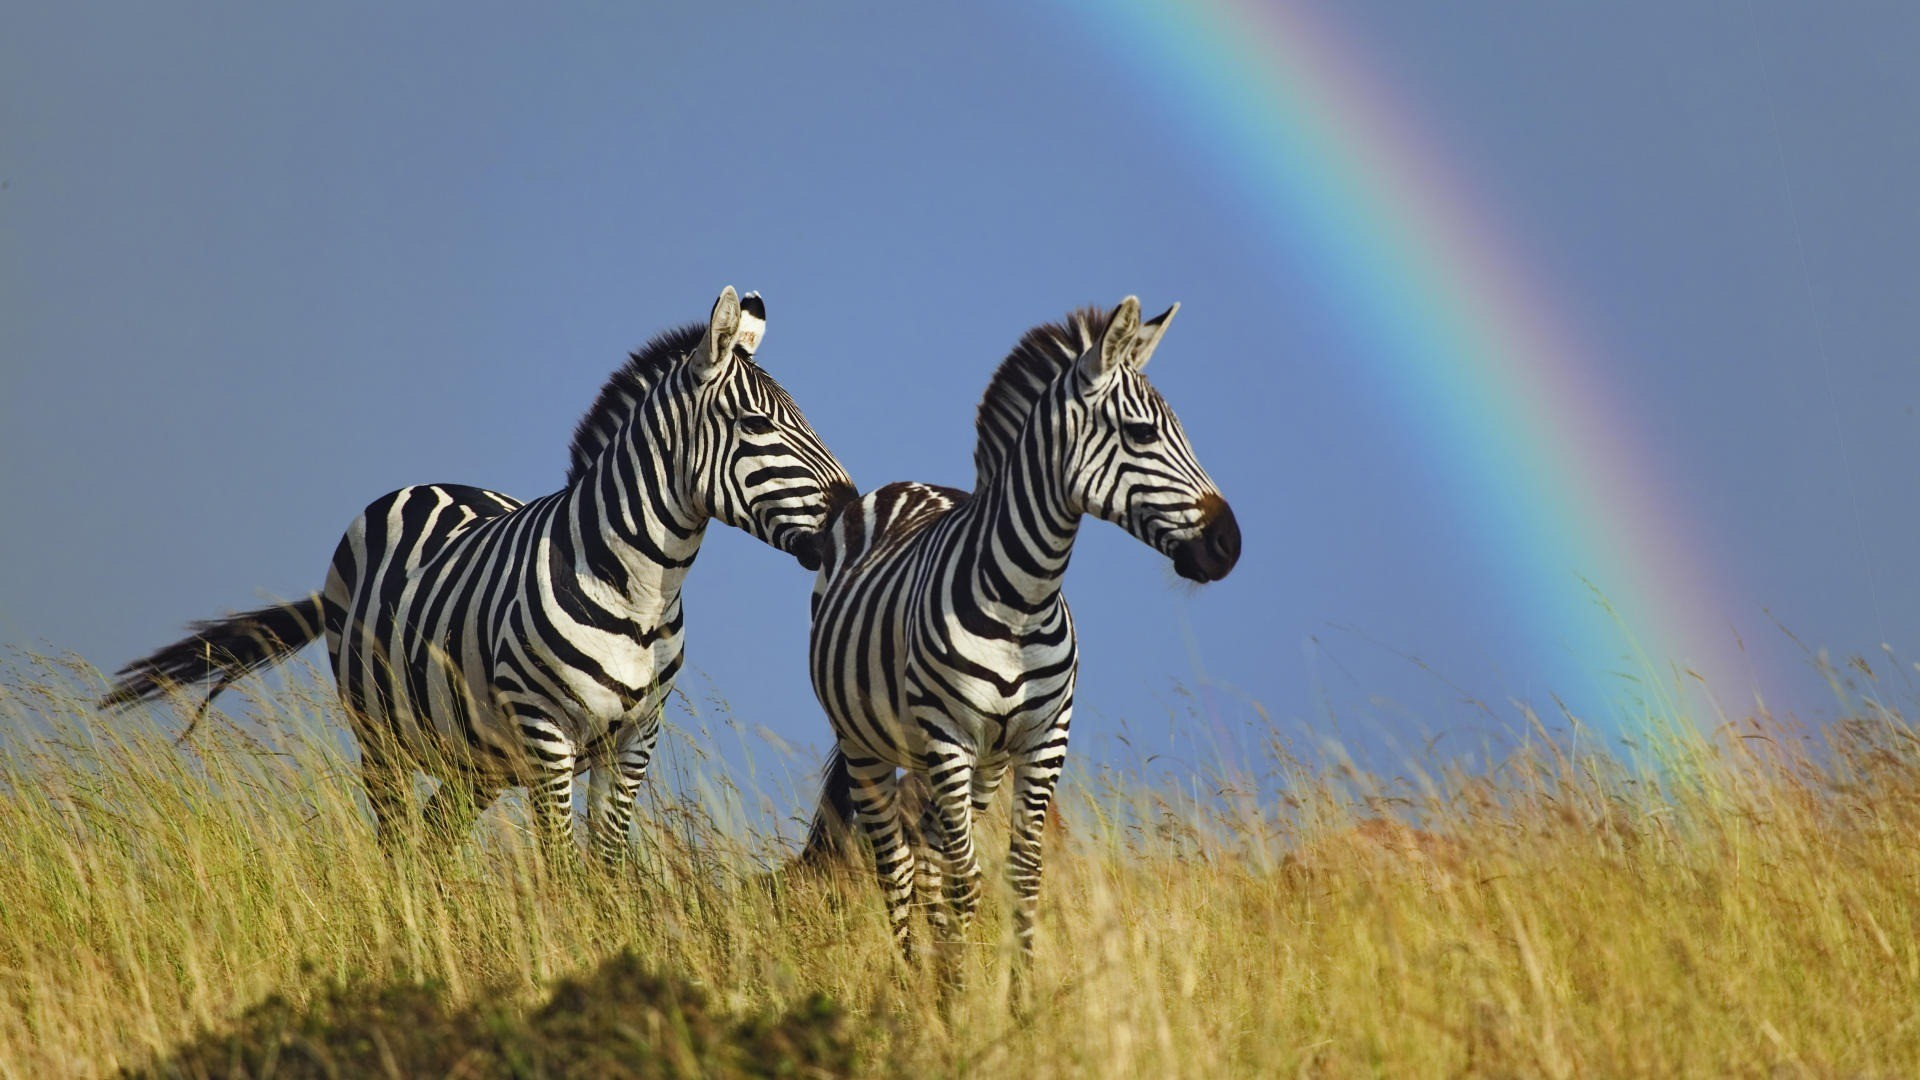 Animals wildlife rainbows zebras HD Wallpaper